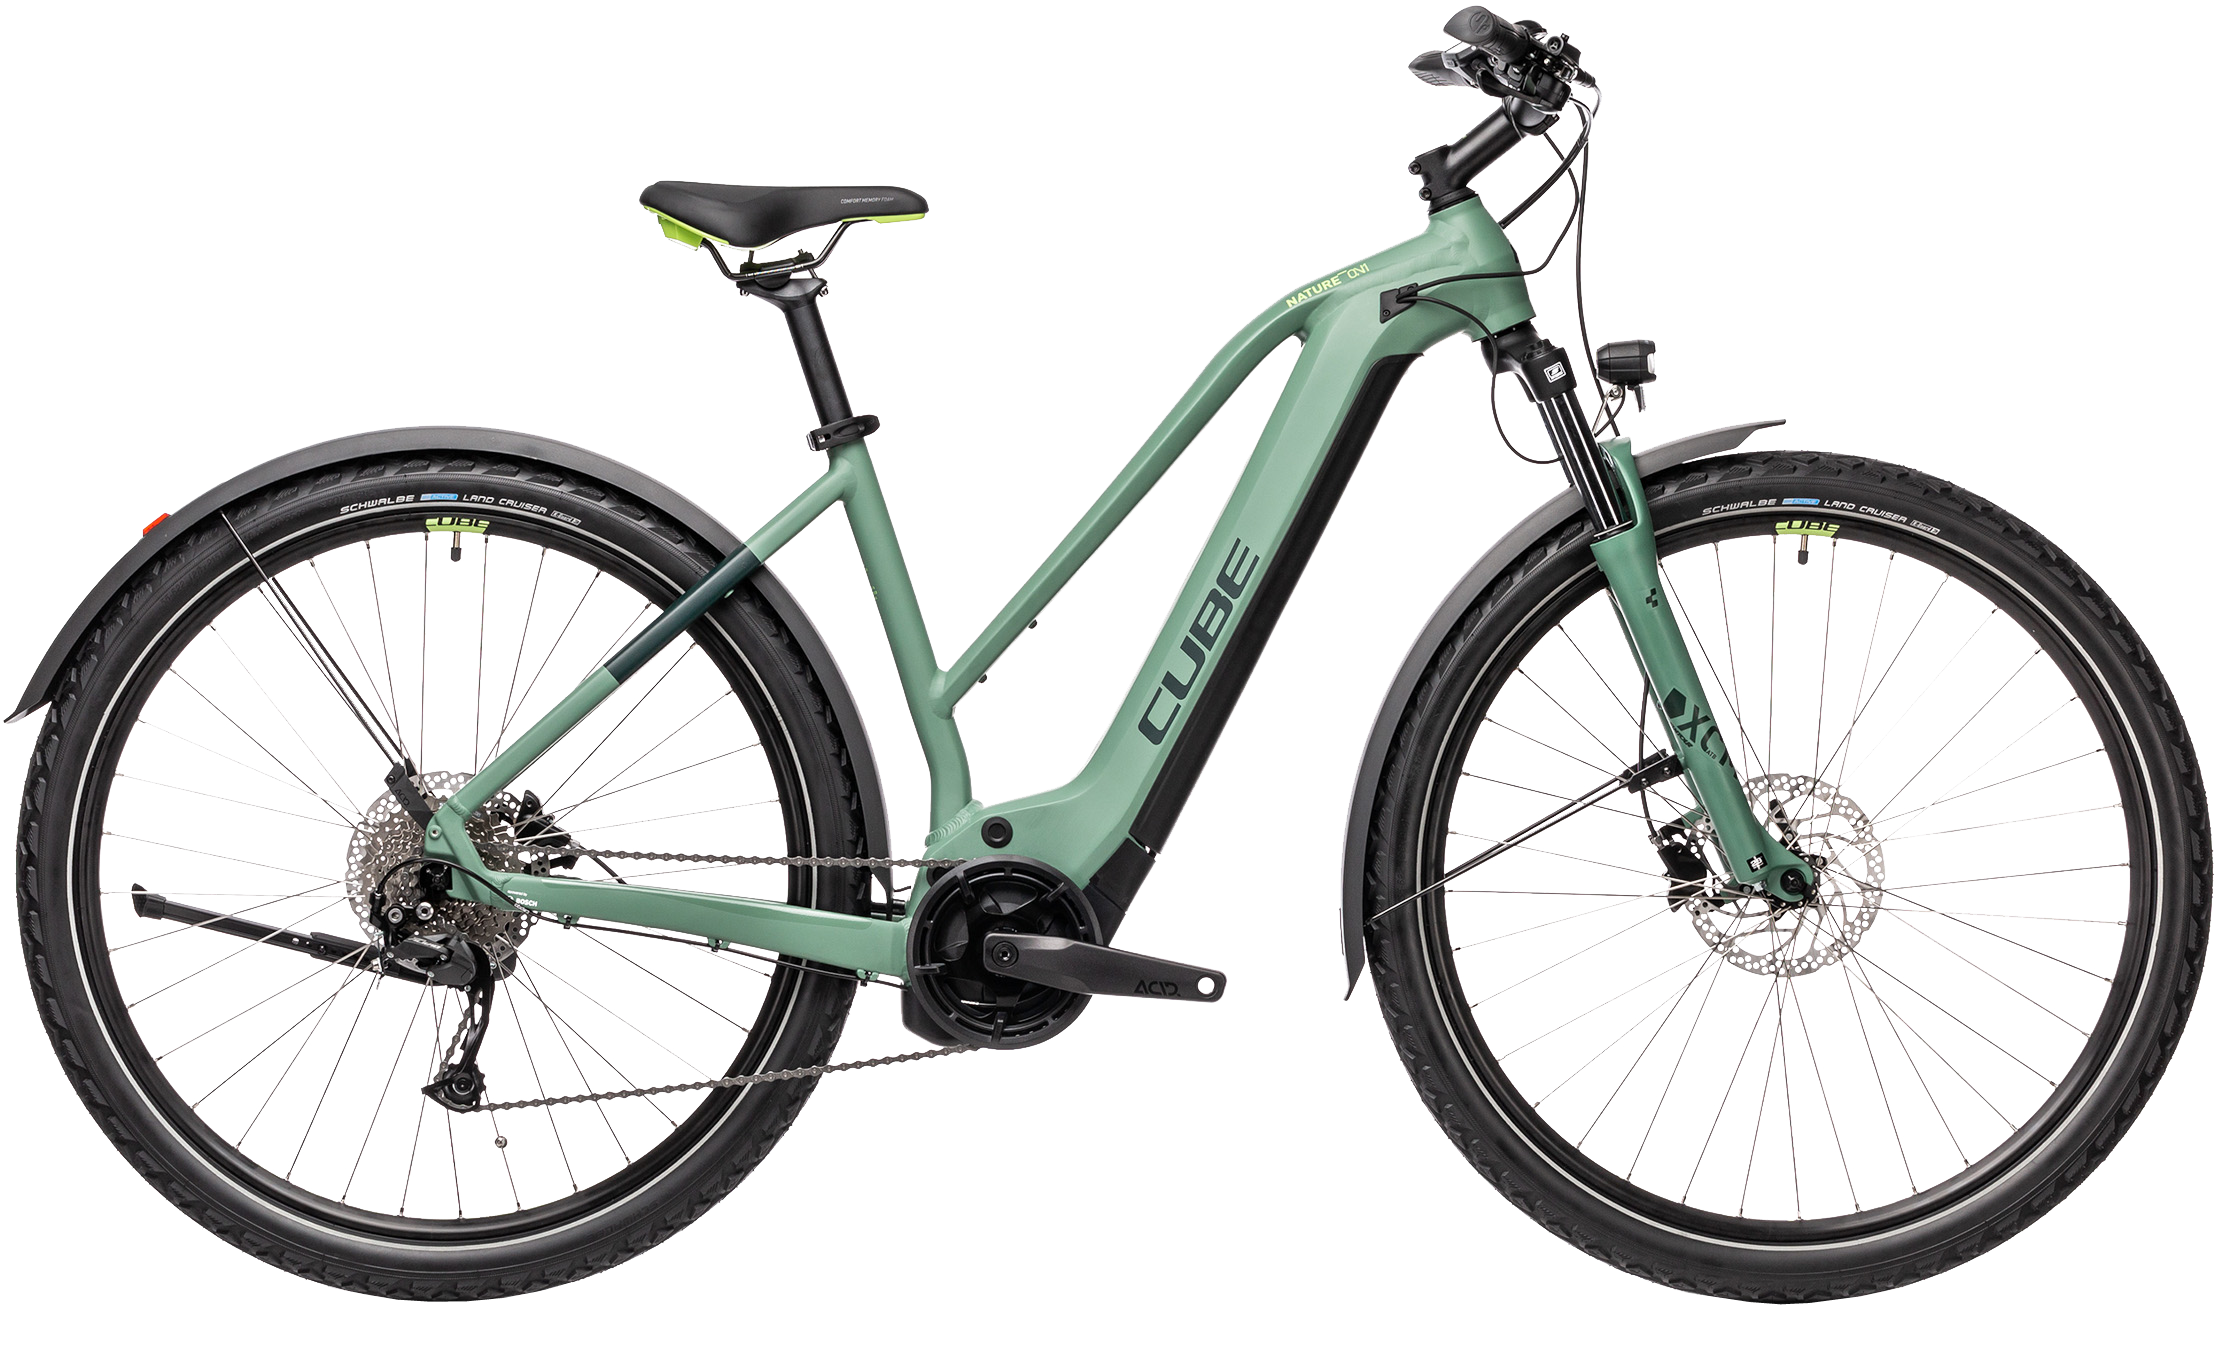 https://w8w5m3f8.stackpathcdn.com/20436/vtc-electrique-cube-nature-hybrid-one-allroad-500-ou-625wh-cadre-mixte.jpg